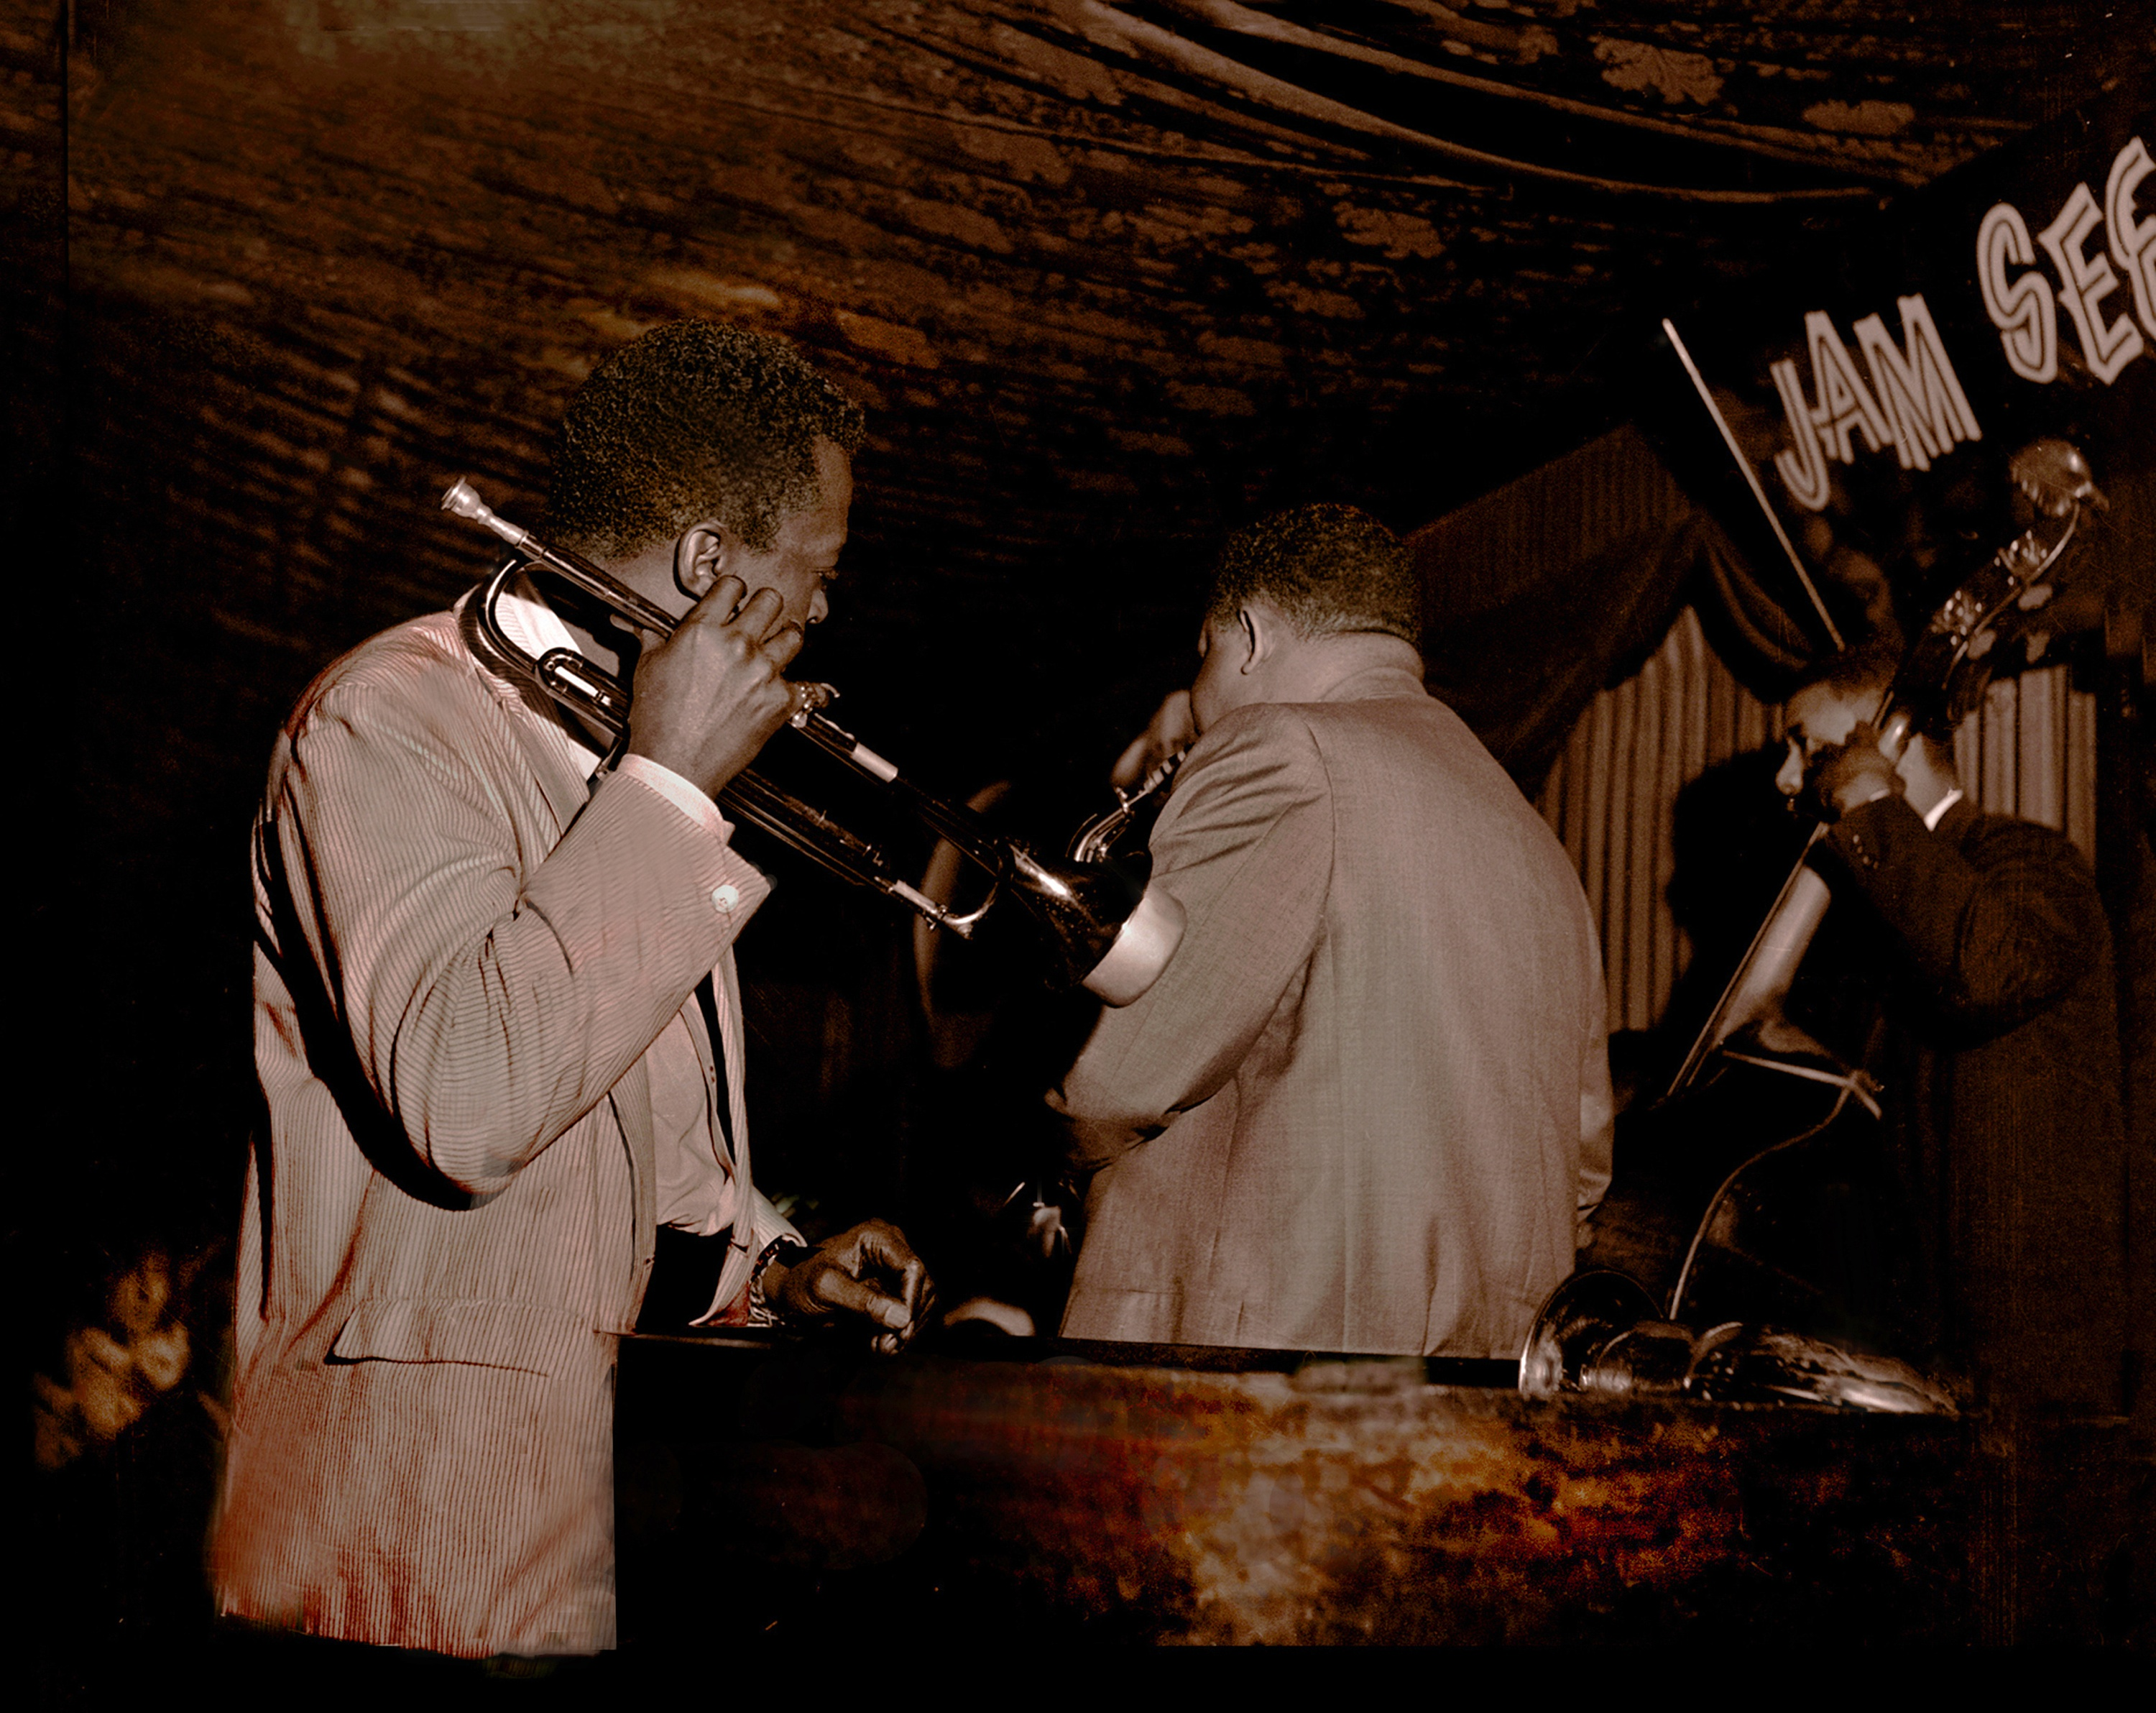 Miles davis at the black hawk jazz club